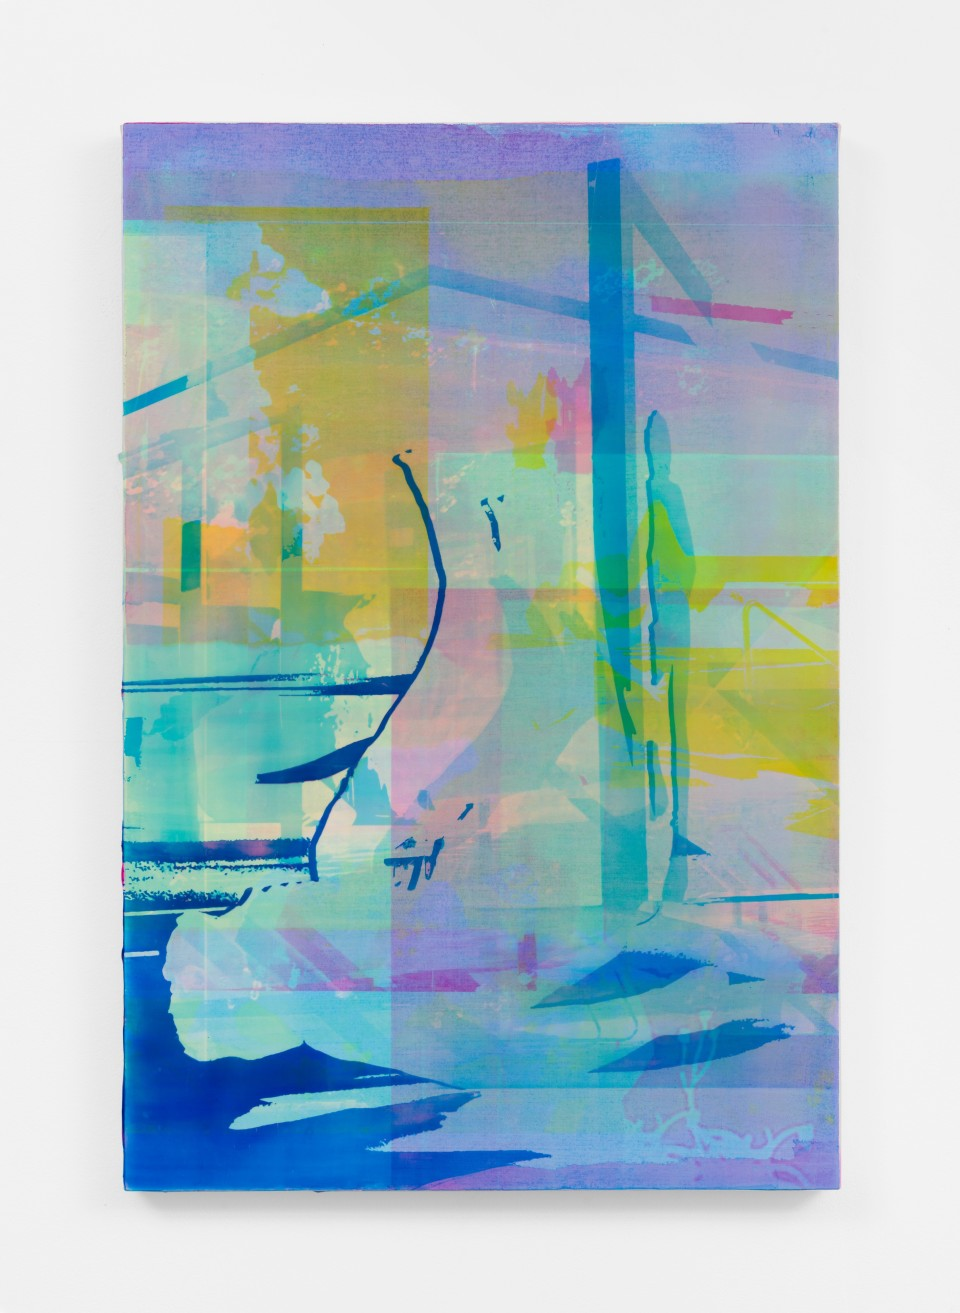 Image: Zoe Walsh  Someone waiting, 2020  signed and dated verso  acrylic on canvas-wrapped panel  30 x 20 inches (76.2 x 50.8 cm)